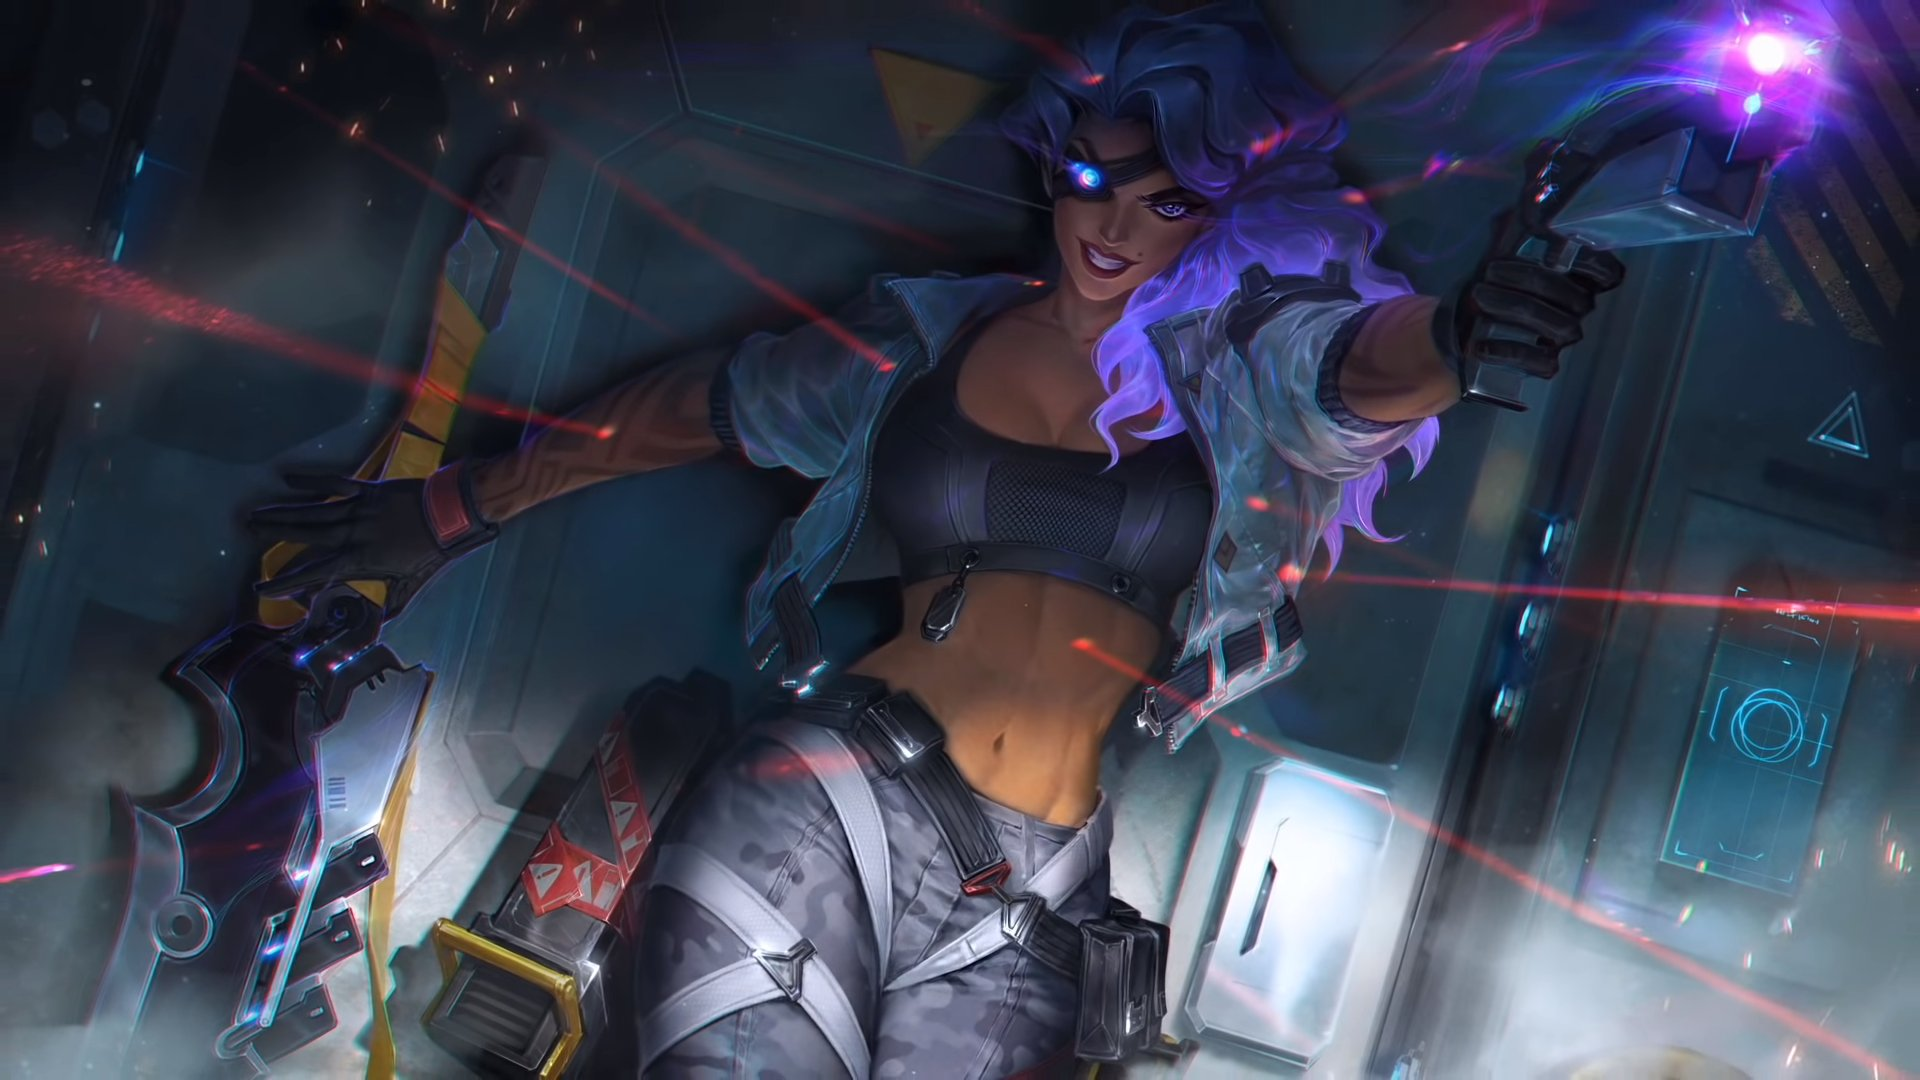 Samira will likely be released in LoL Patch 10.18, and get a PsyOps skin on release.